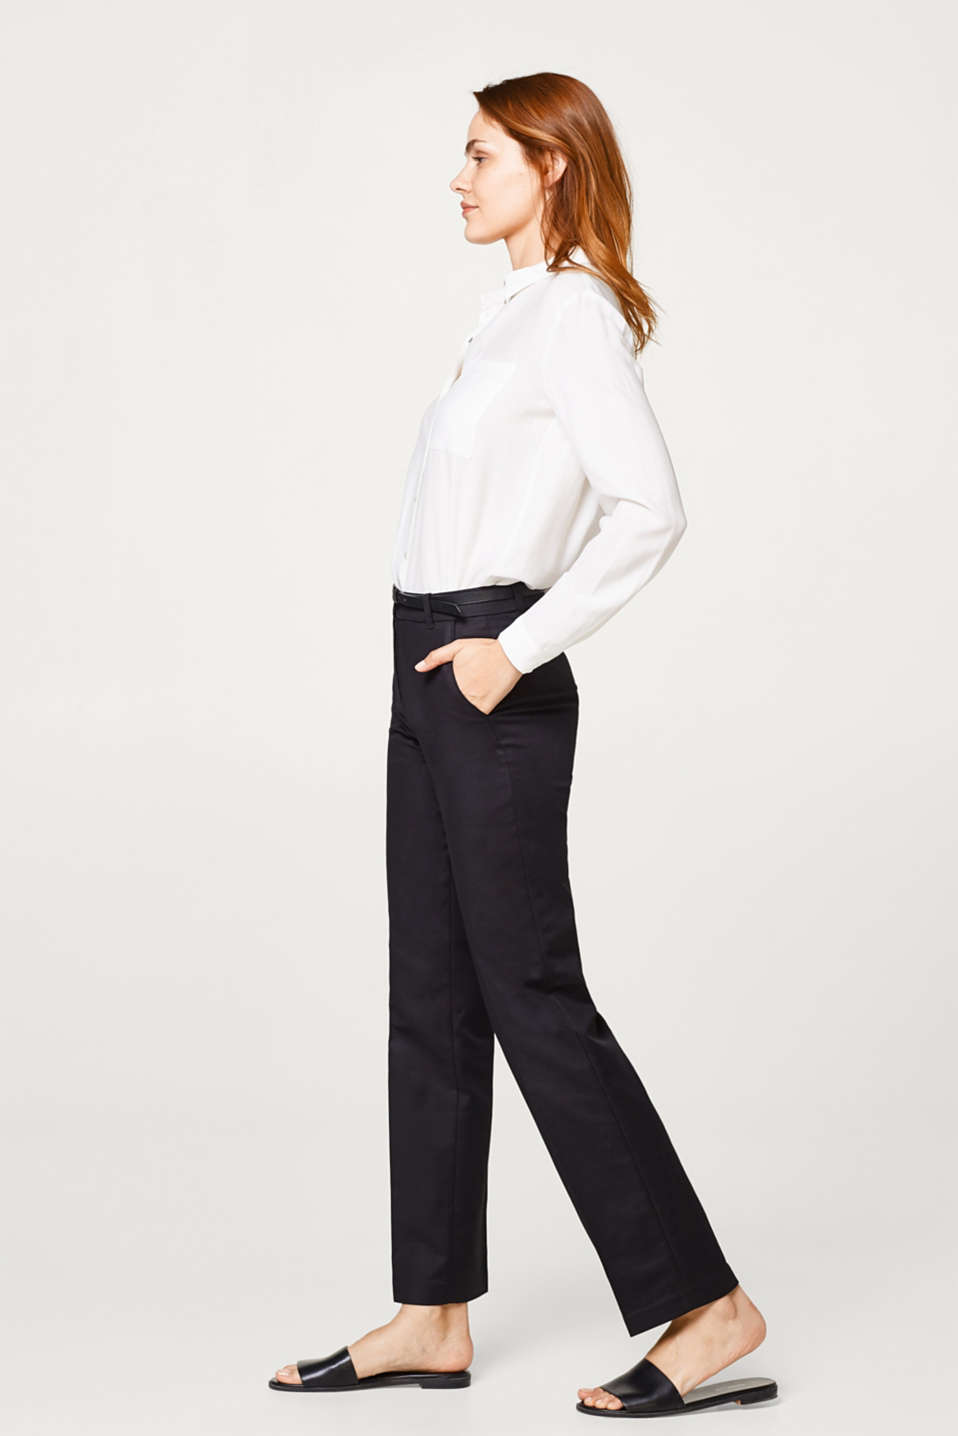 Esprit - Trousers in firm stretch satin, with a belt